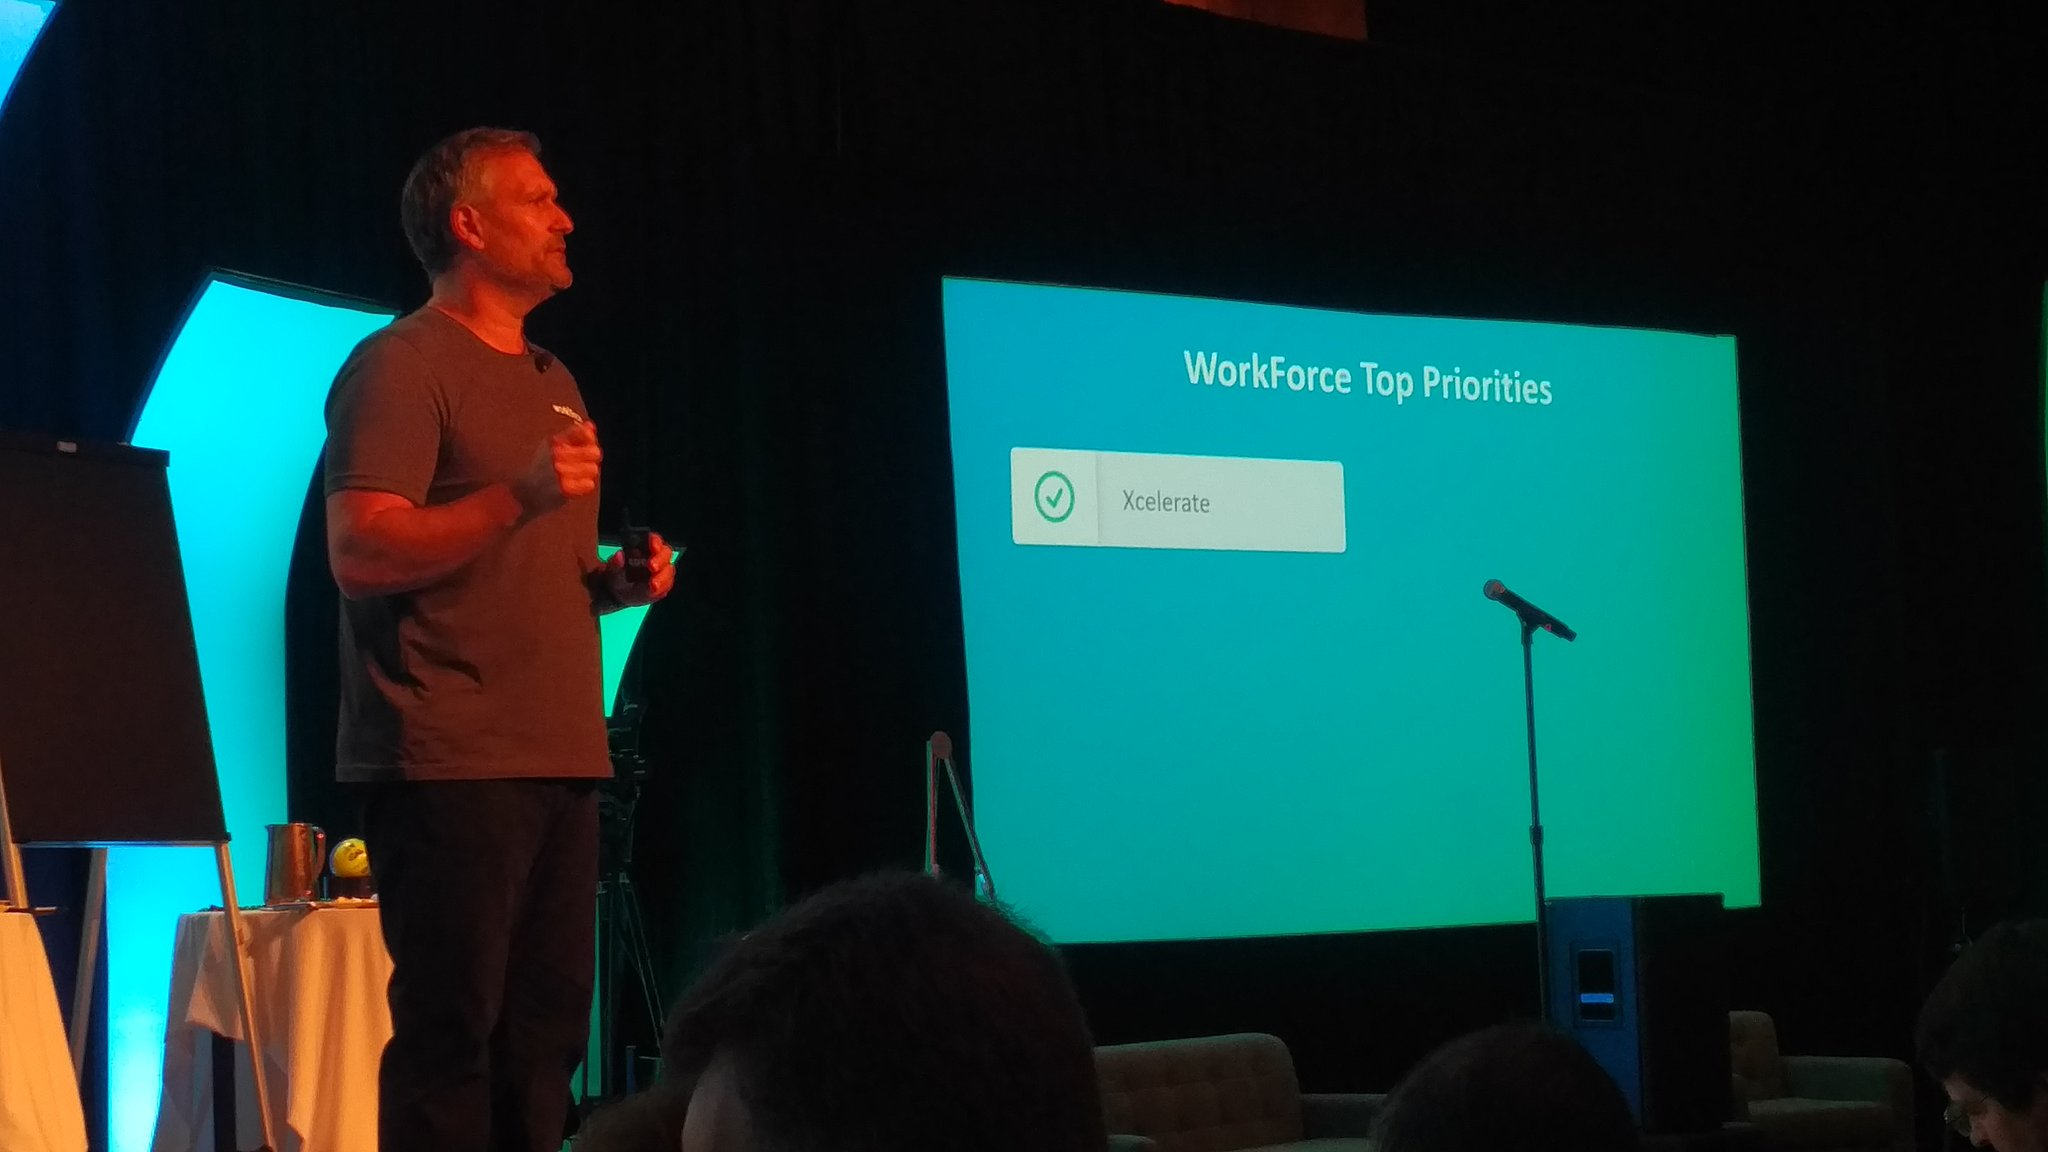 .@mikemorini77 up to @WorkForceSW top priories - starts w Xcelerate - faster implementations #wfsvision17 https://t.co/WwcYDg4K88